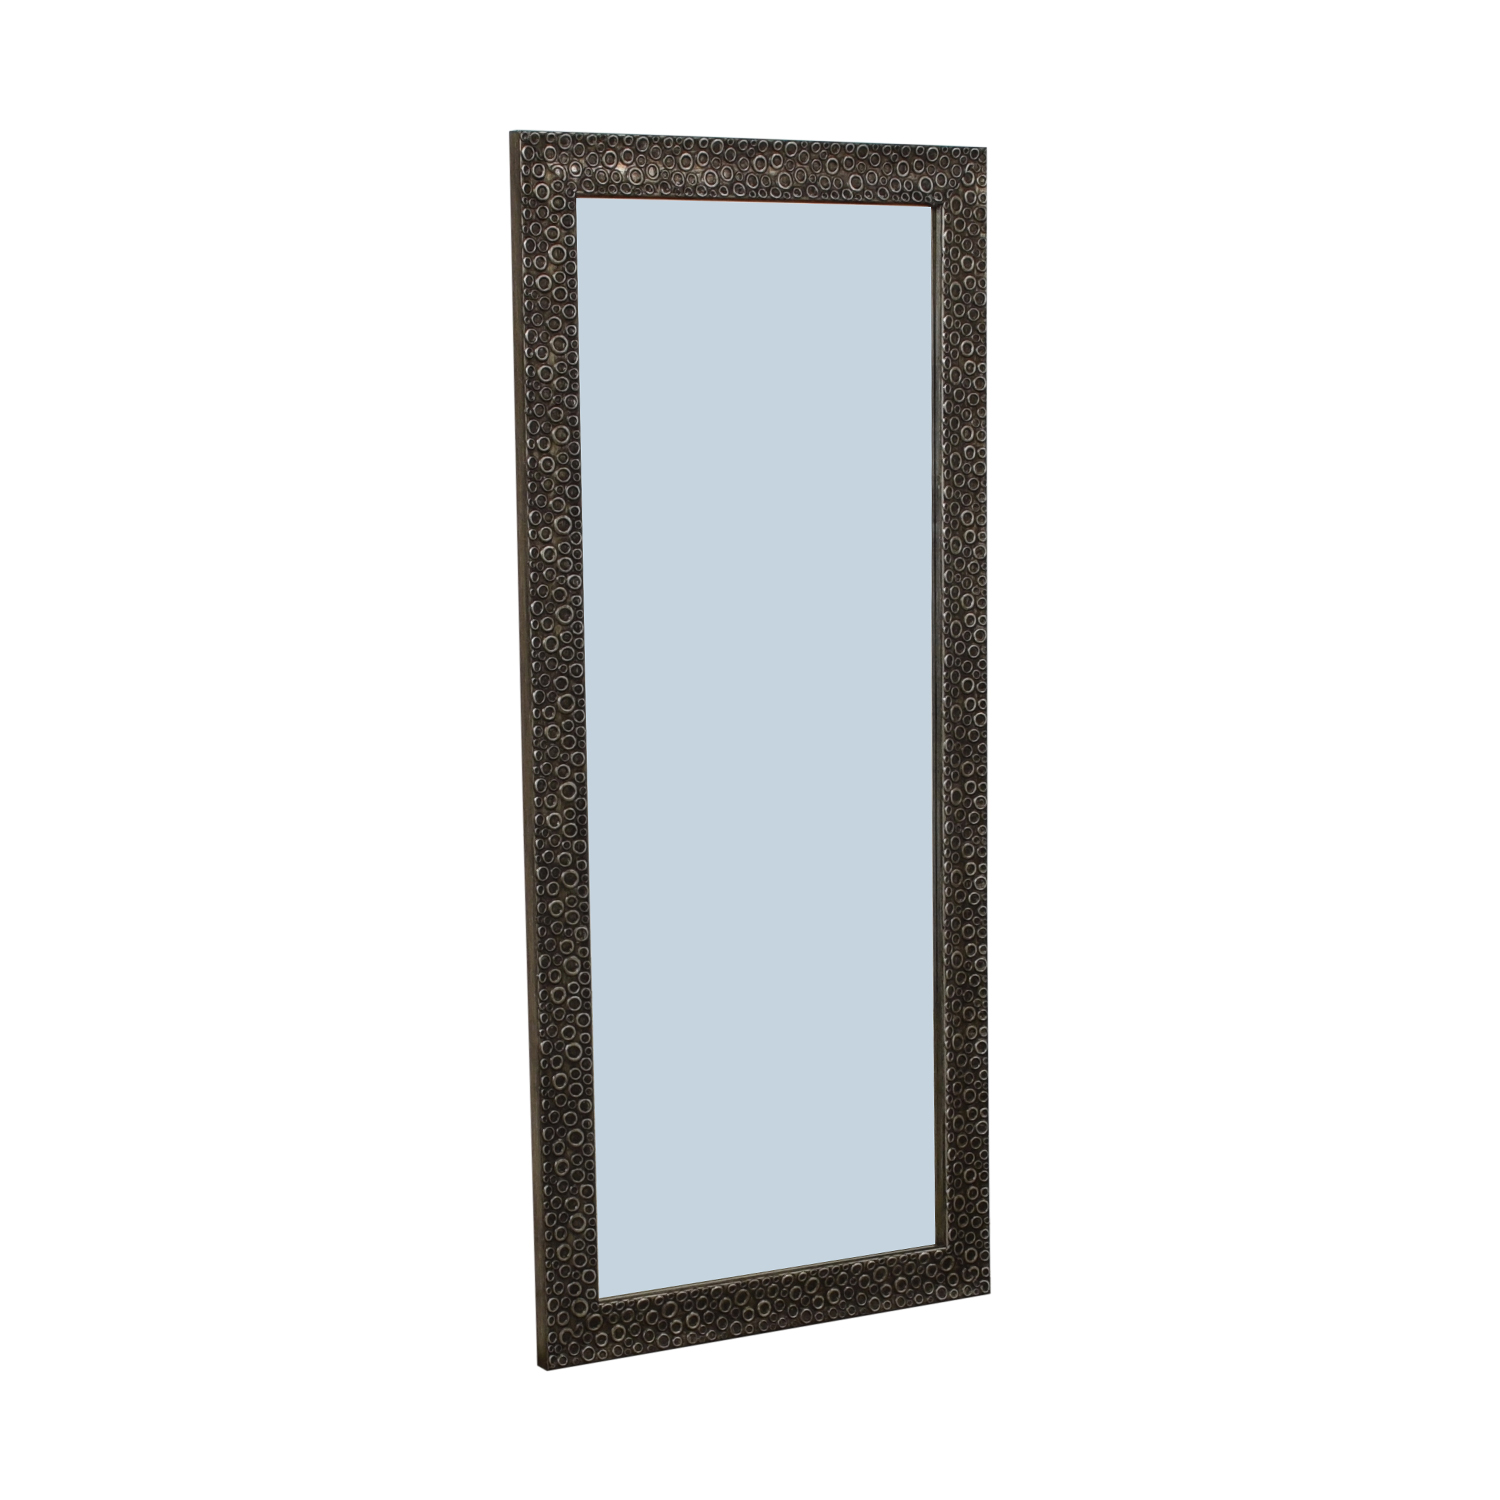 shop Framed Standing Floor Mirror  Decor